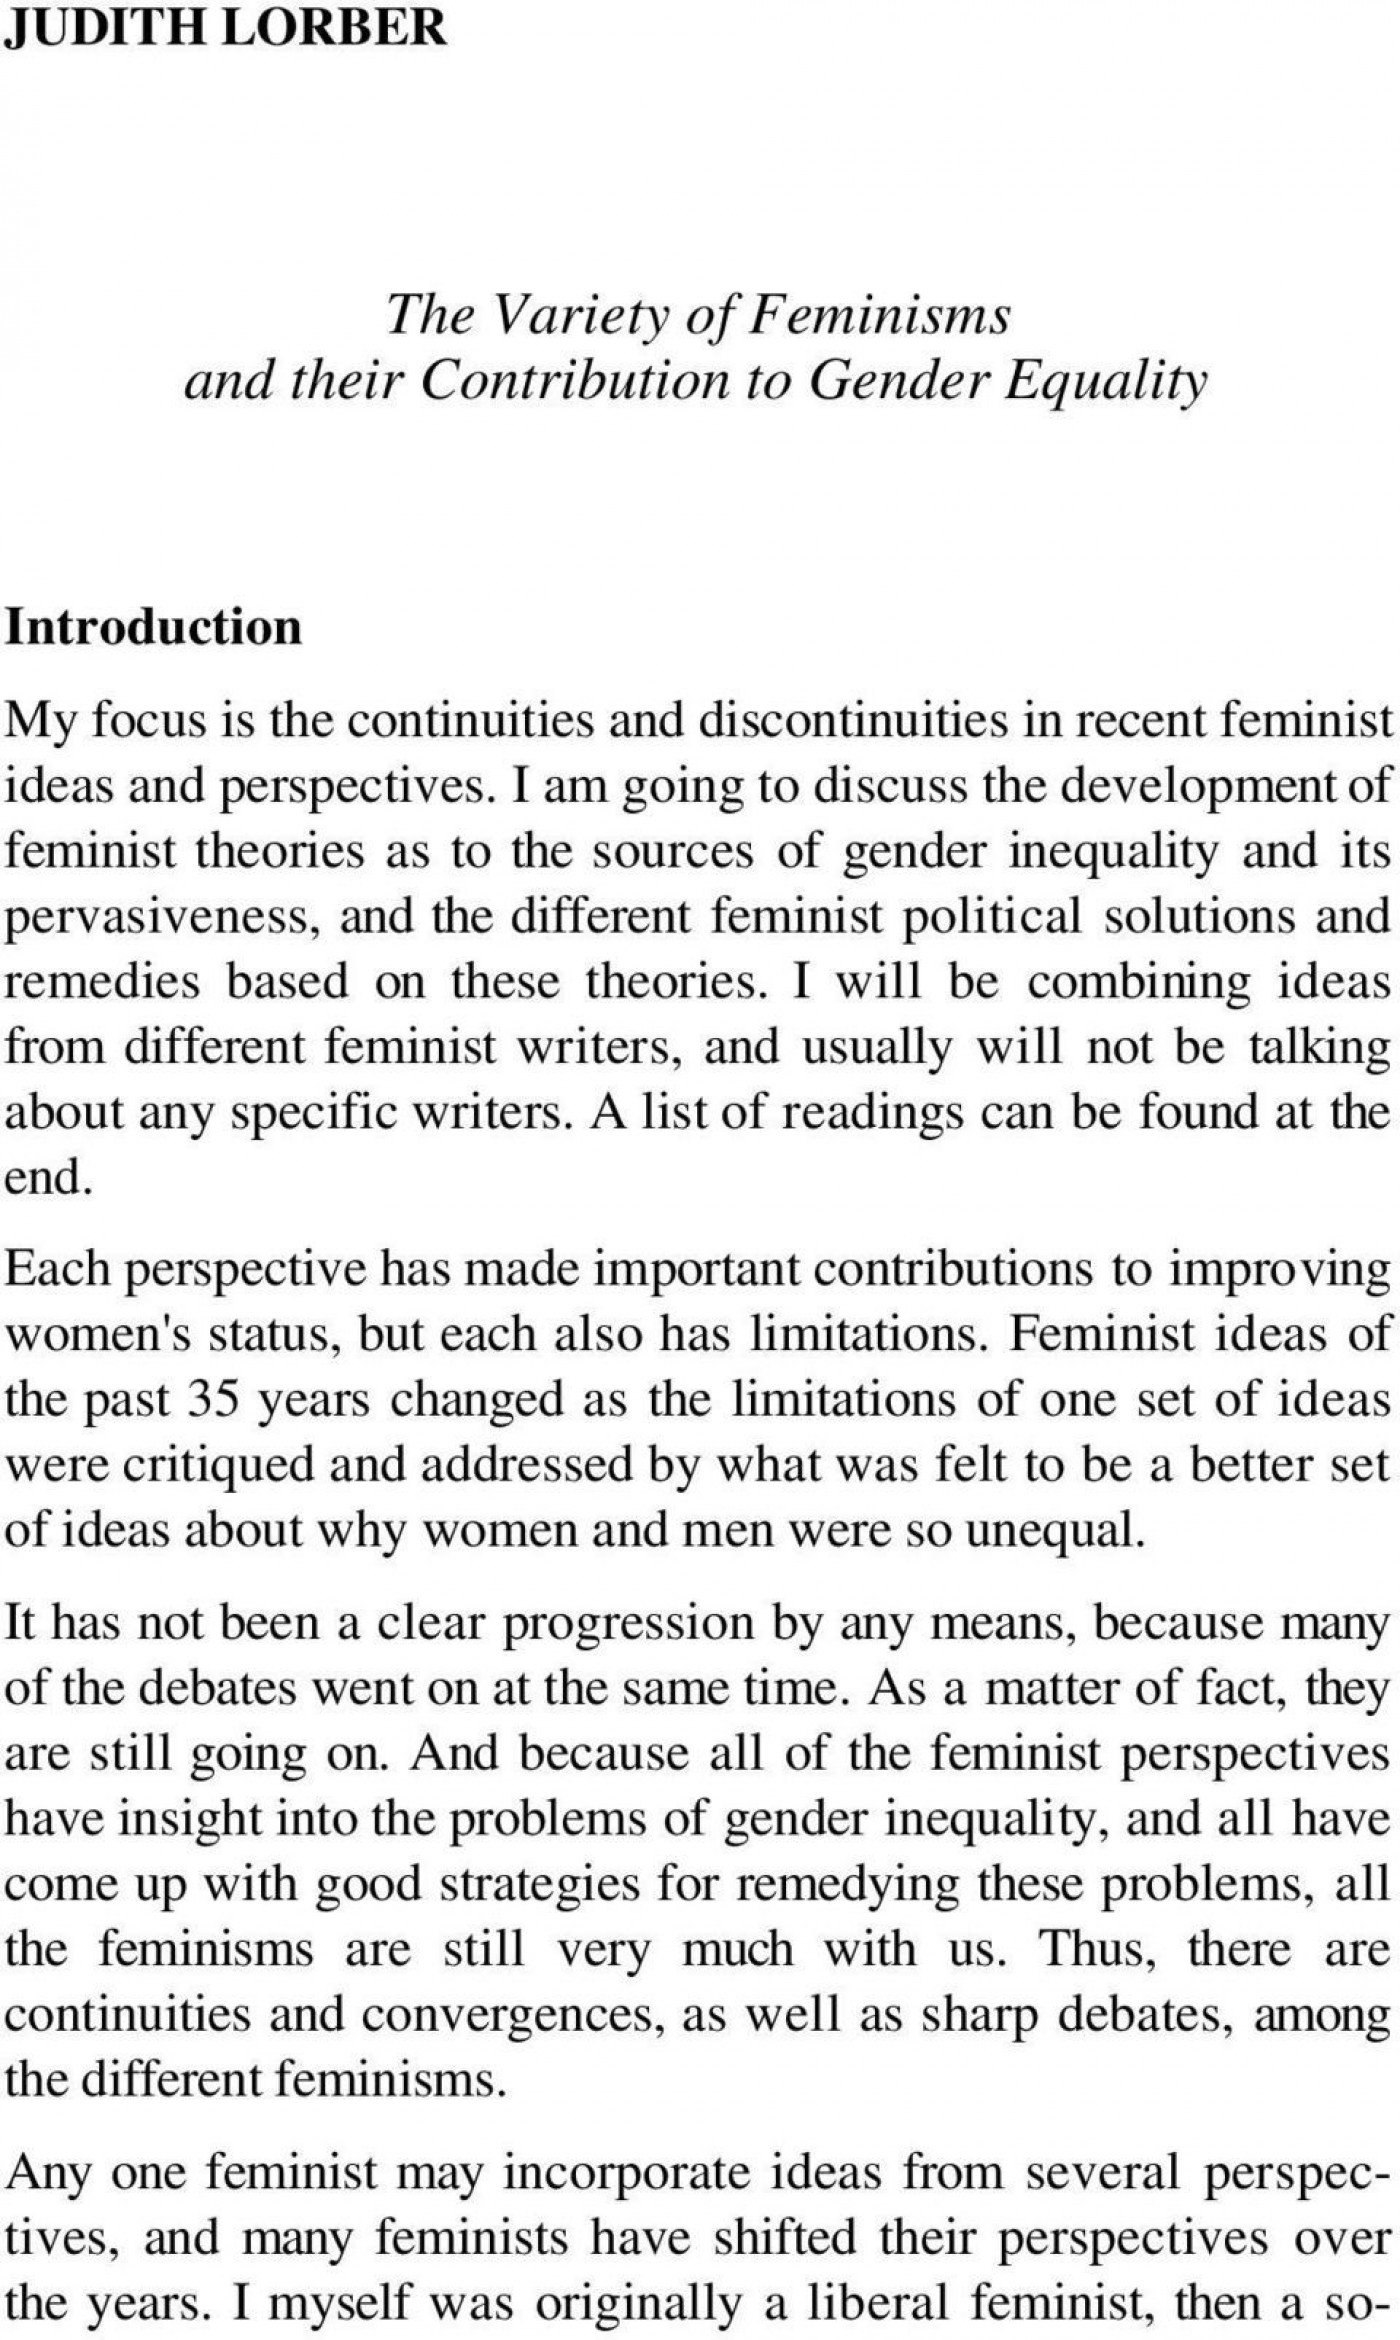 002 Essay Example Page 1 Formidable Equality Questions Gender Titles 1400